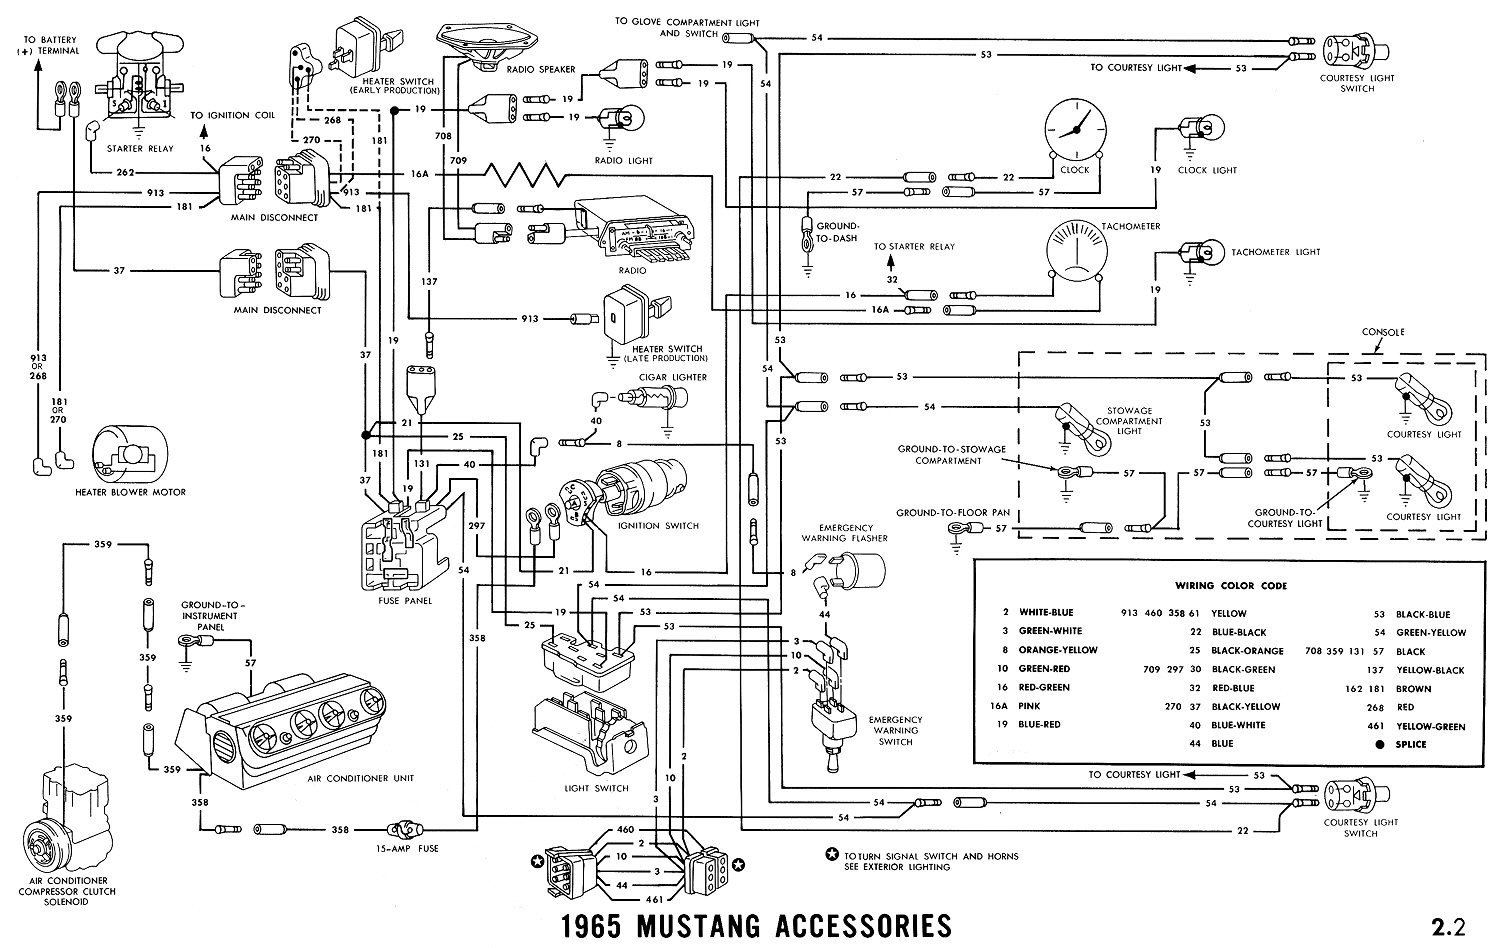 1965i 1965 mustang wiring diagrams average joe restoration 1970 mustang radio wiring diagram at virtualis.co